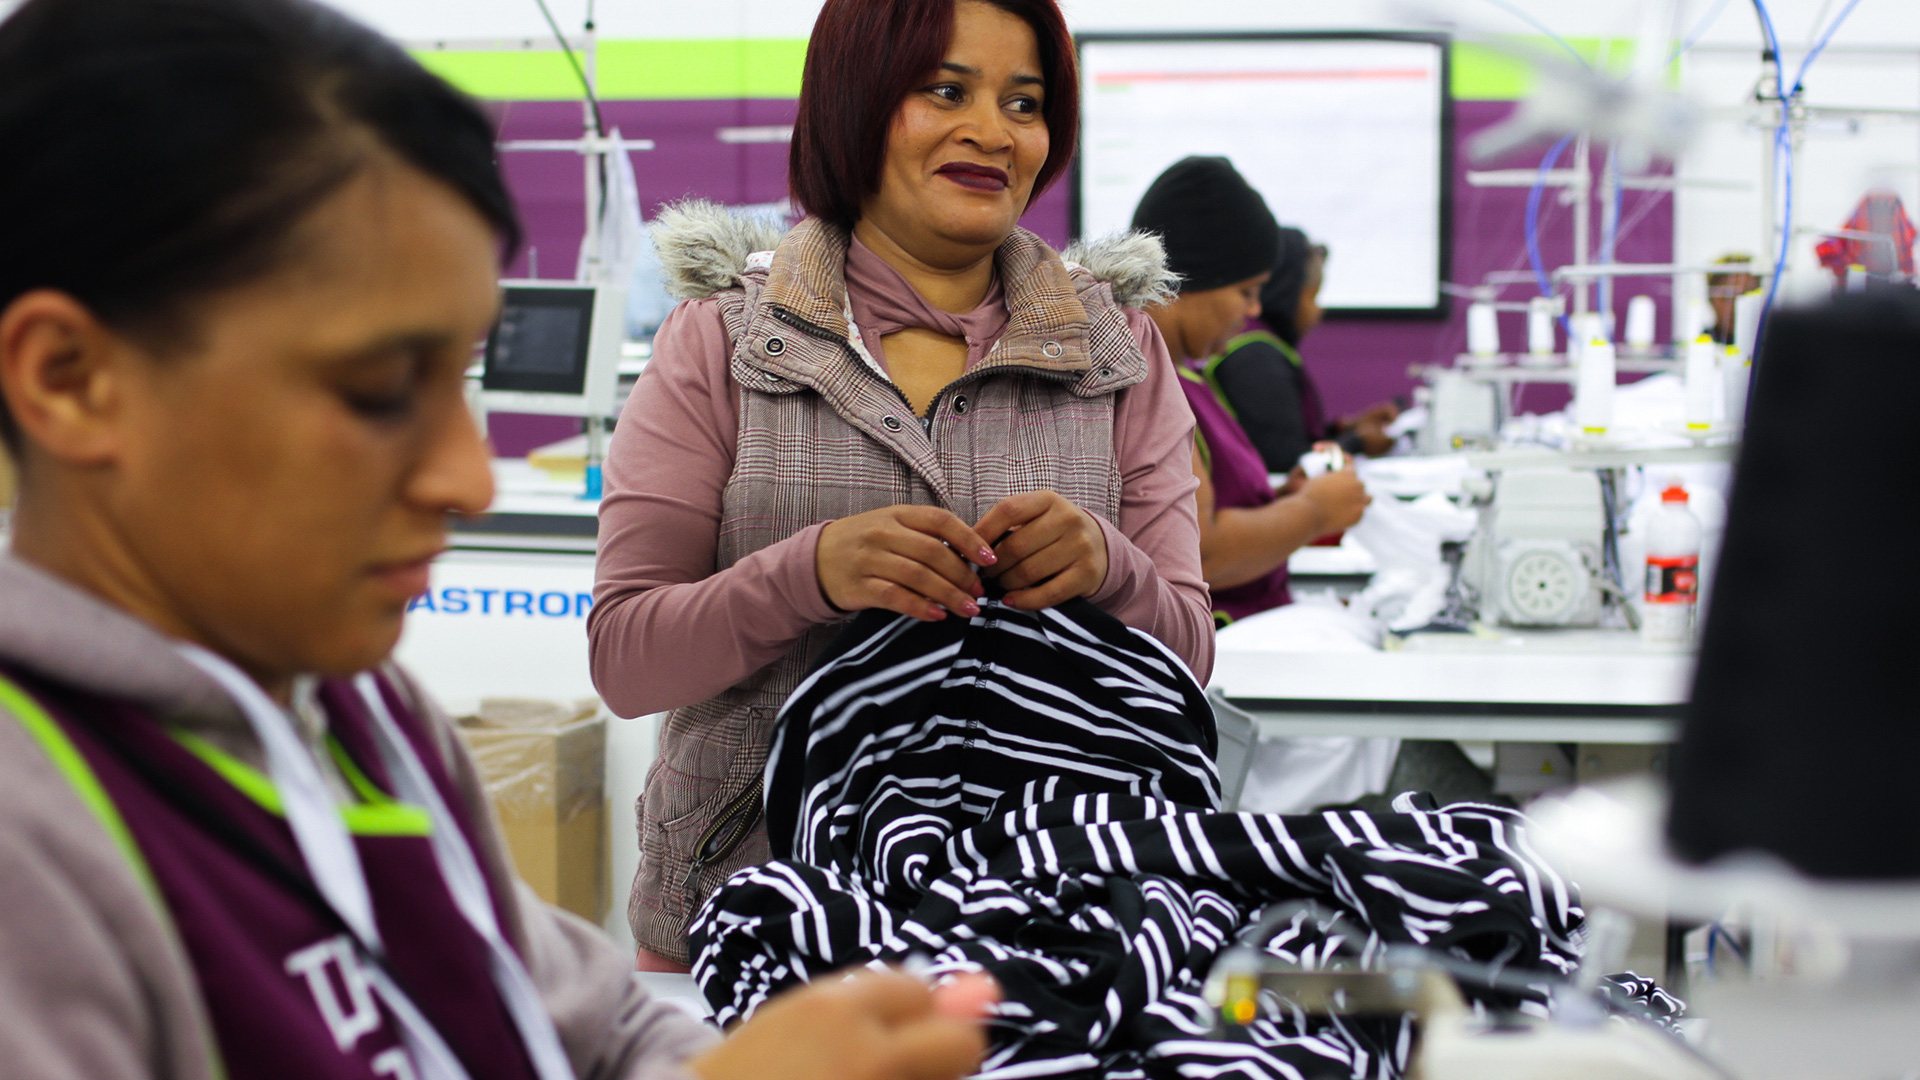 TFG is Empowering SA Women by Providing Retail-related Education and Employment Opportunities